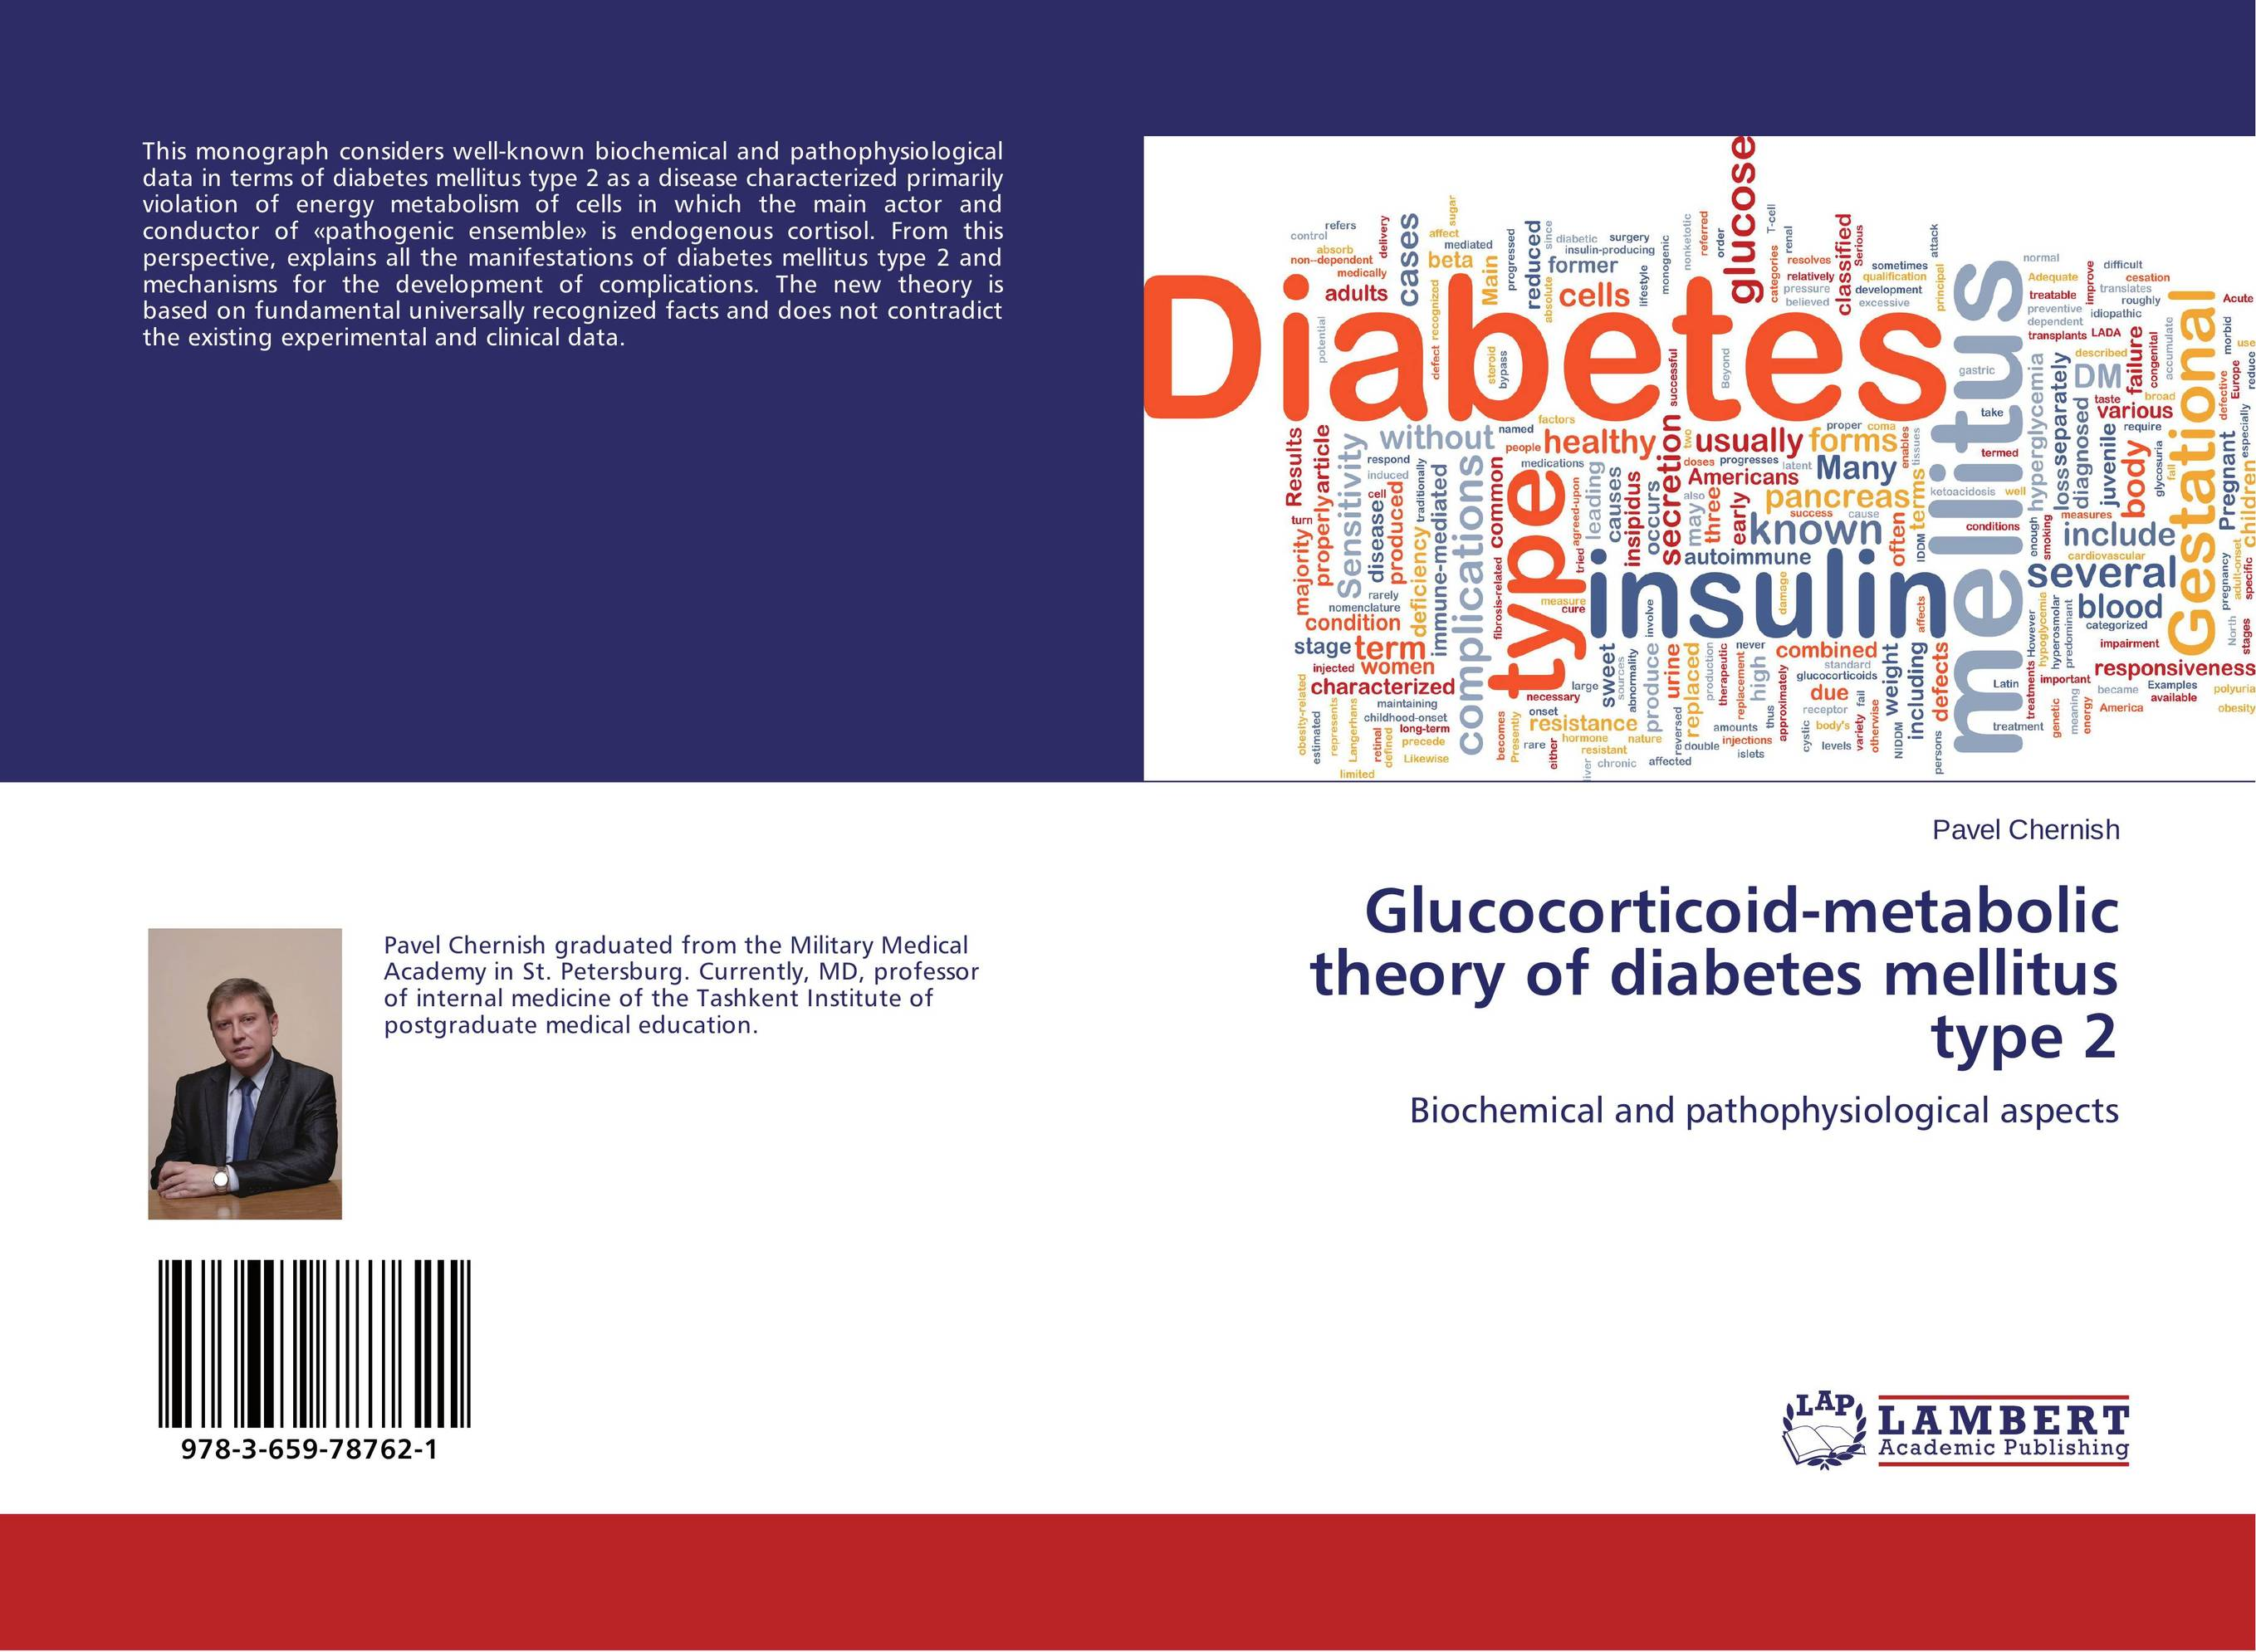 Glucocorticoid-metabolic theory of diabetes mellitus type 2 periodontal therapy and type ii diabetes mellitus